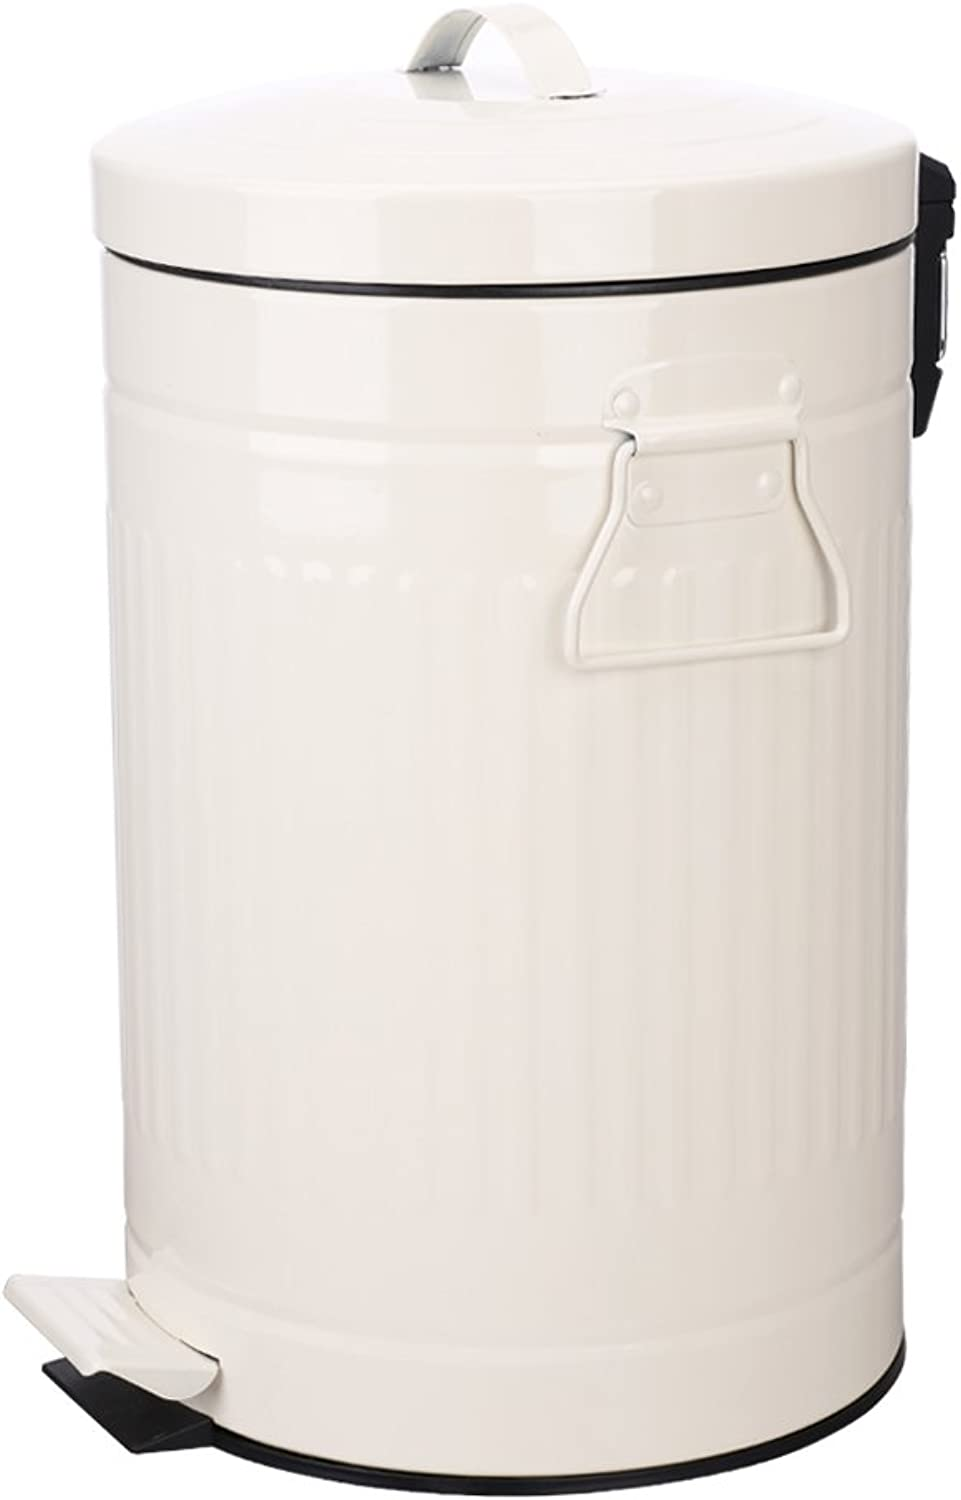 Bathroom Trash Can with Lid, White Bathroom Bedroom Wastebasket Soft Close, Small Retro Vintage Home Garbage Can, Steel Garbage Cans for Office, Foot Pedal Step, Chrome, 12 L   3 Gallon, Glossy White